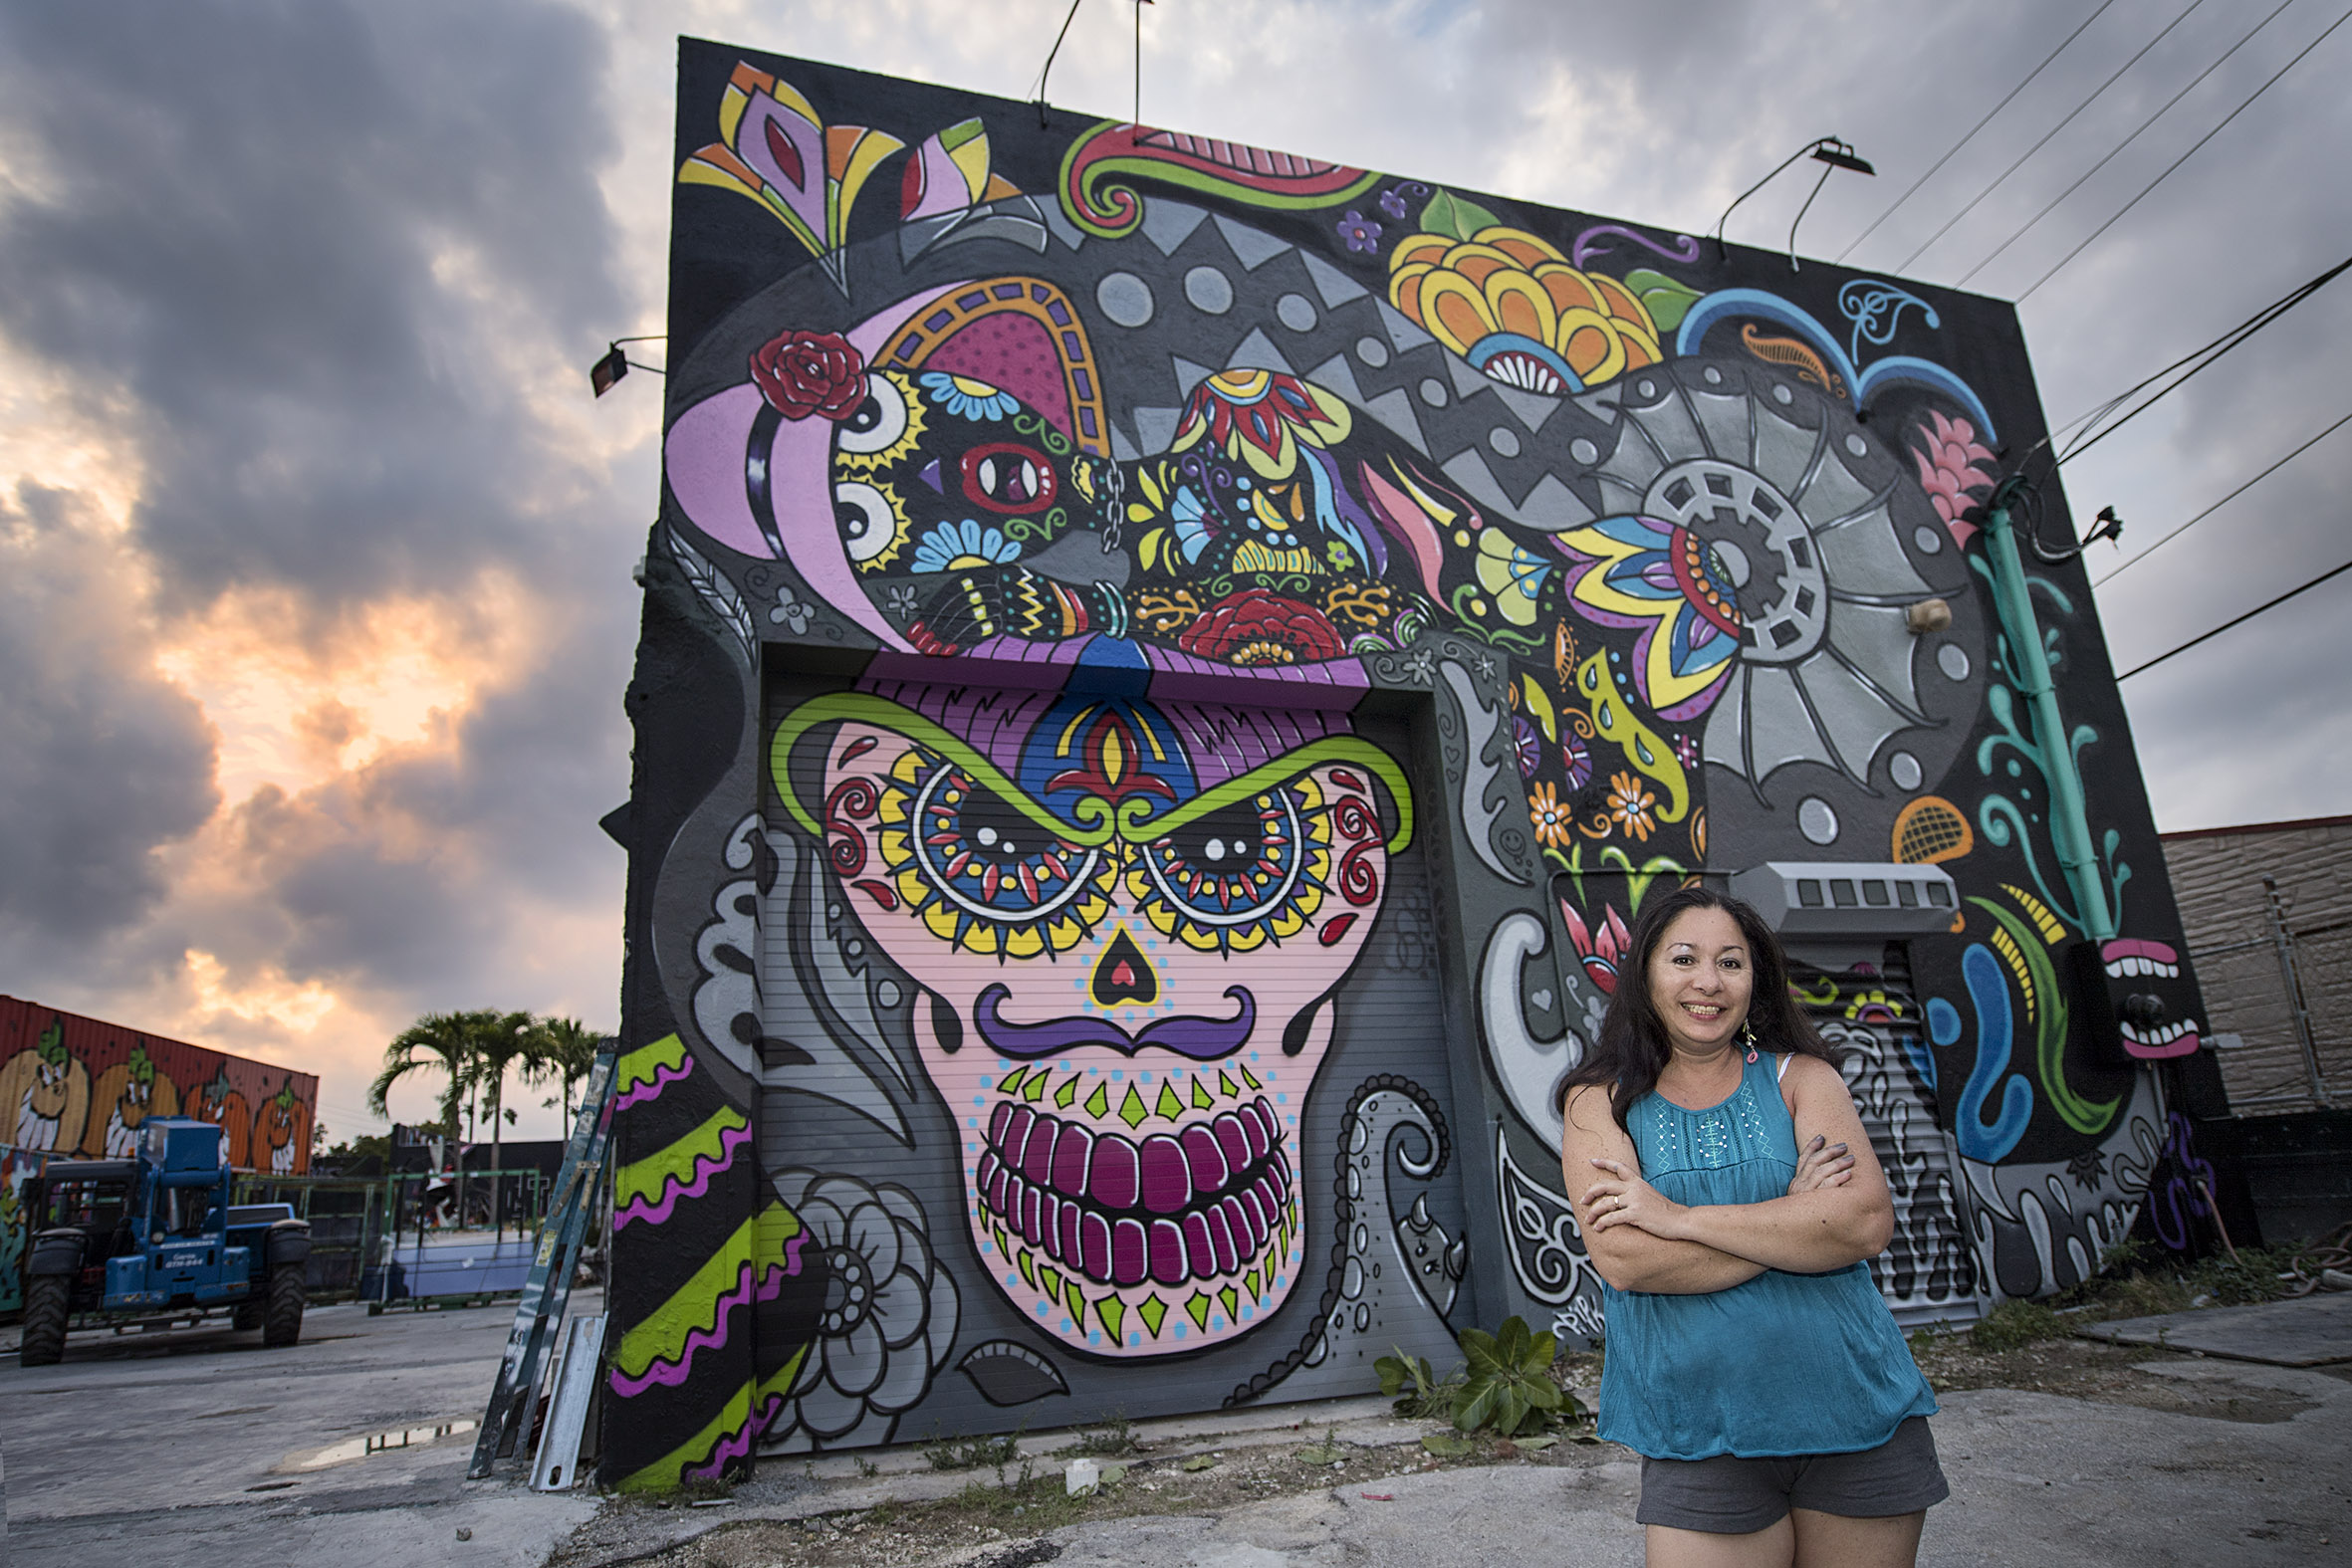 Wynwood2018-7644 copy.jpg